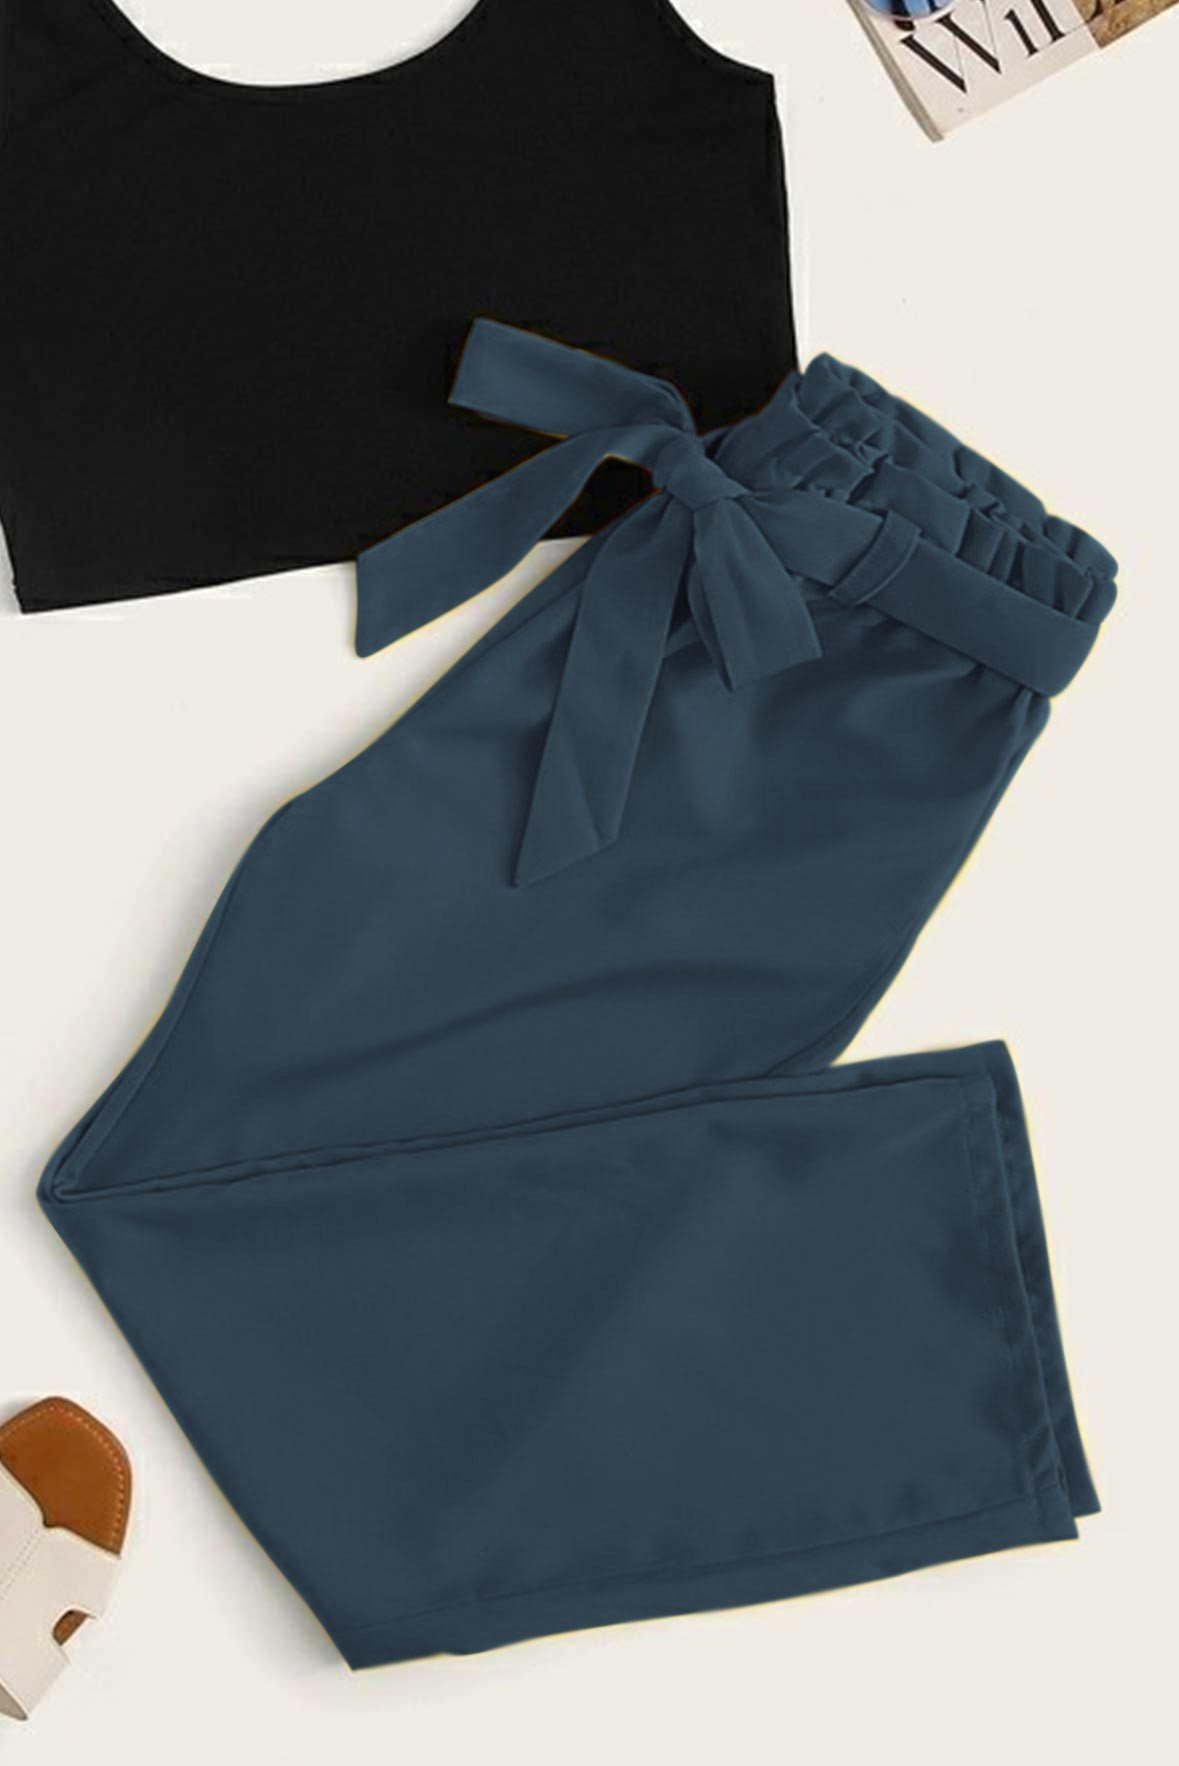 Sky at night trouser